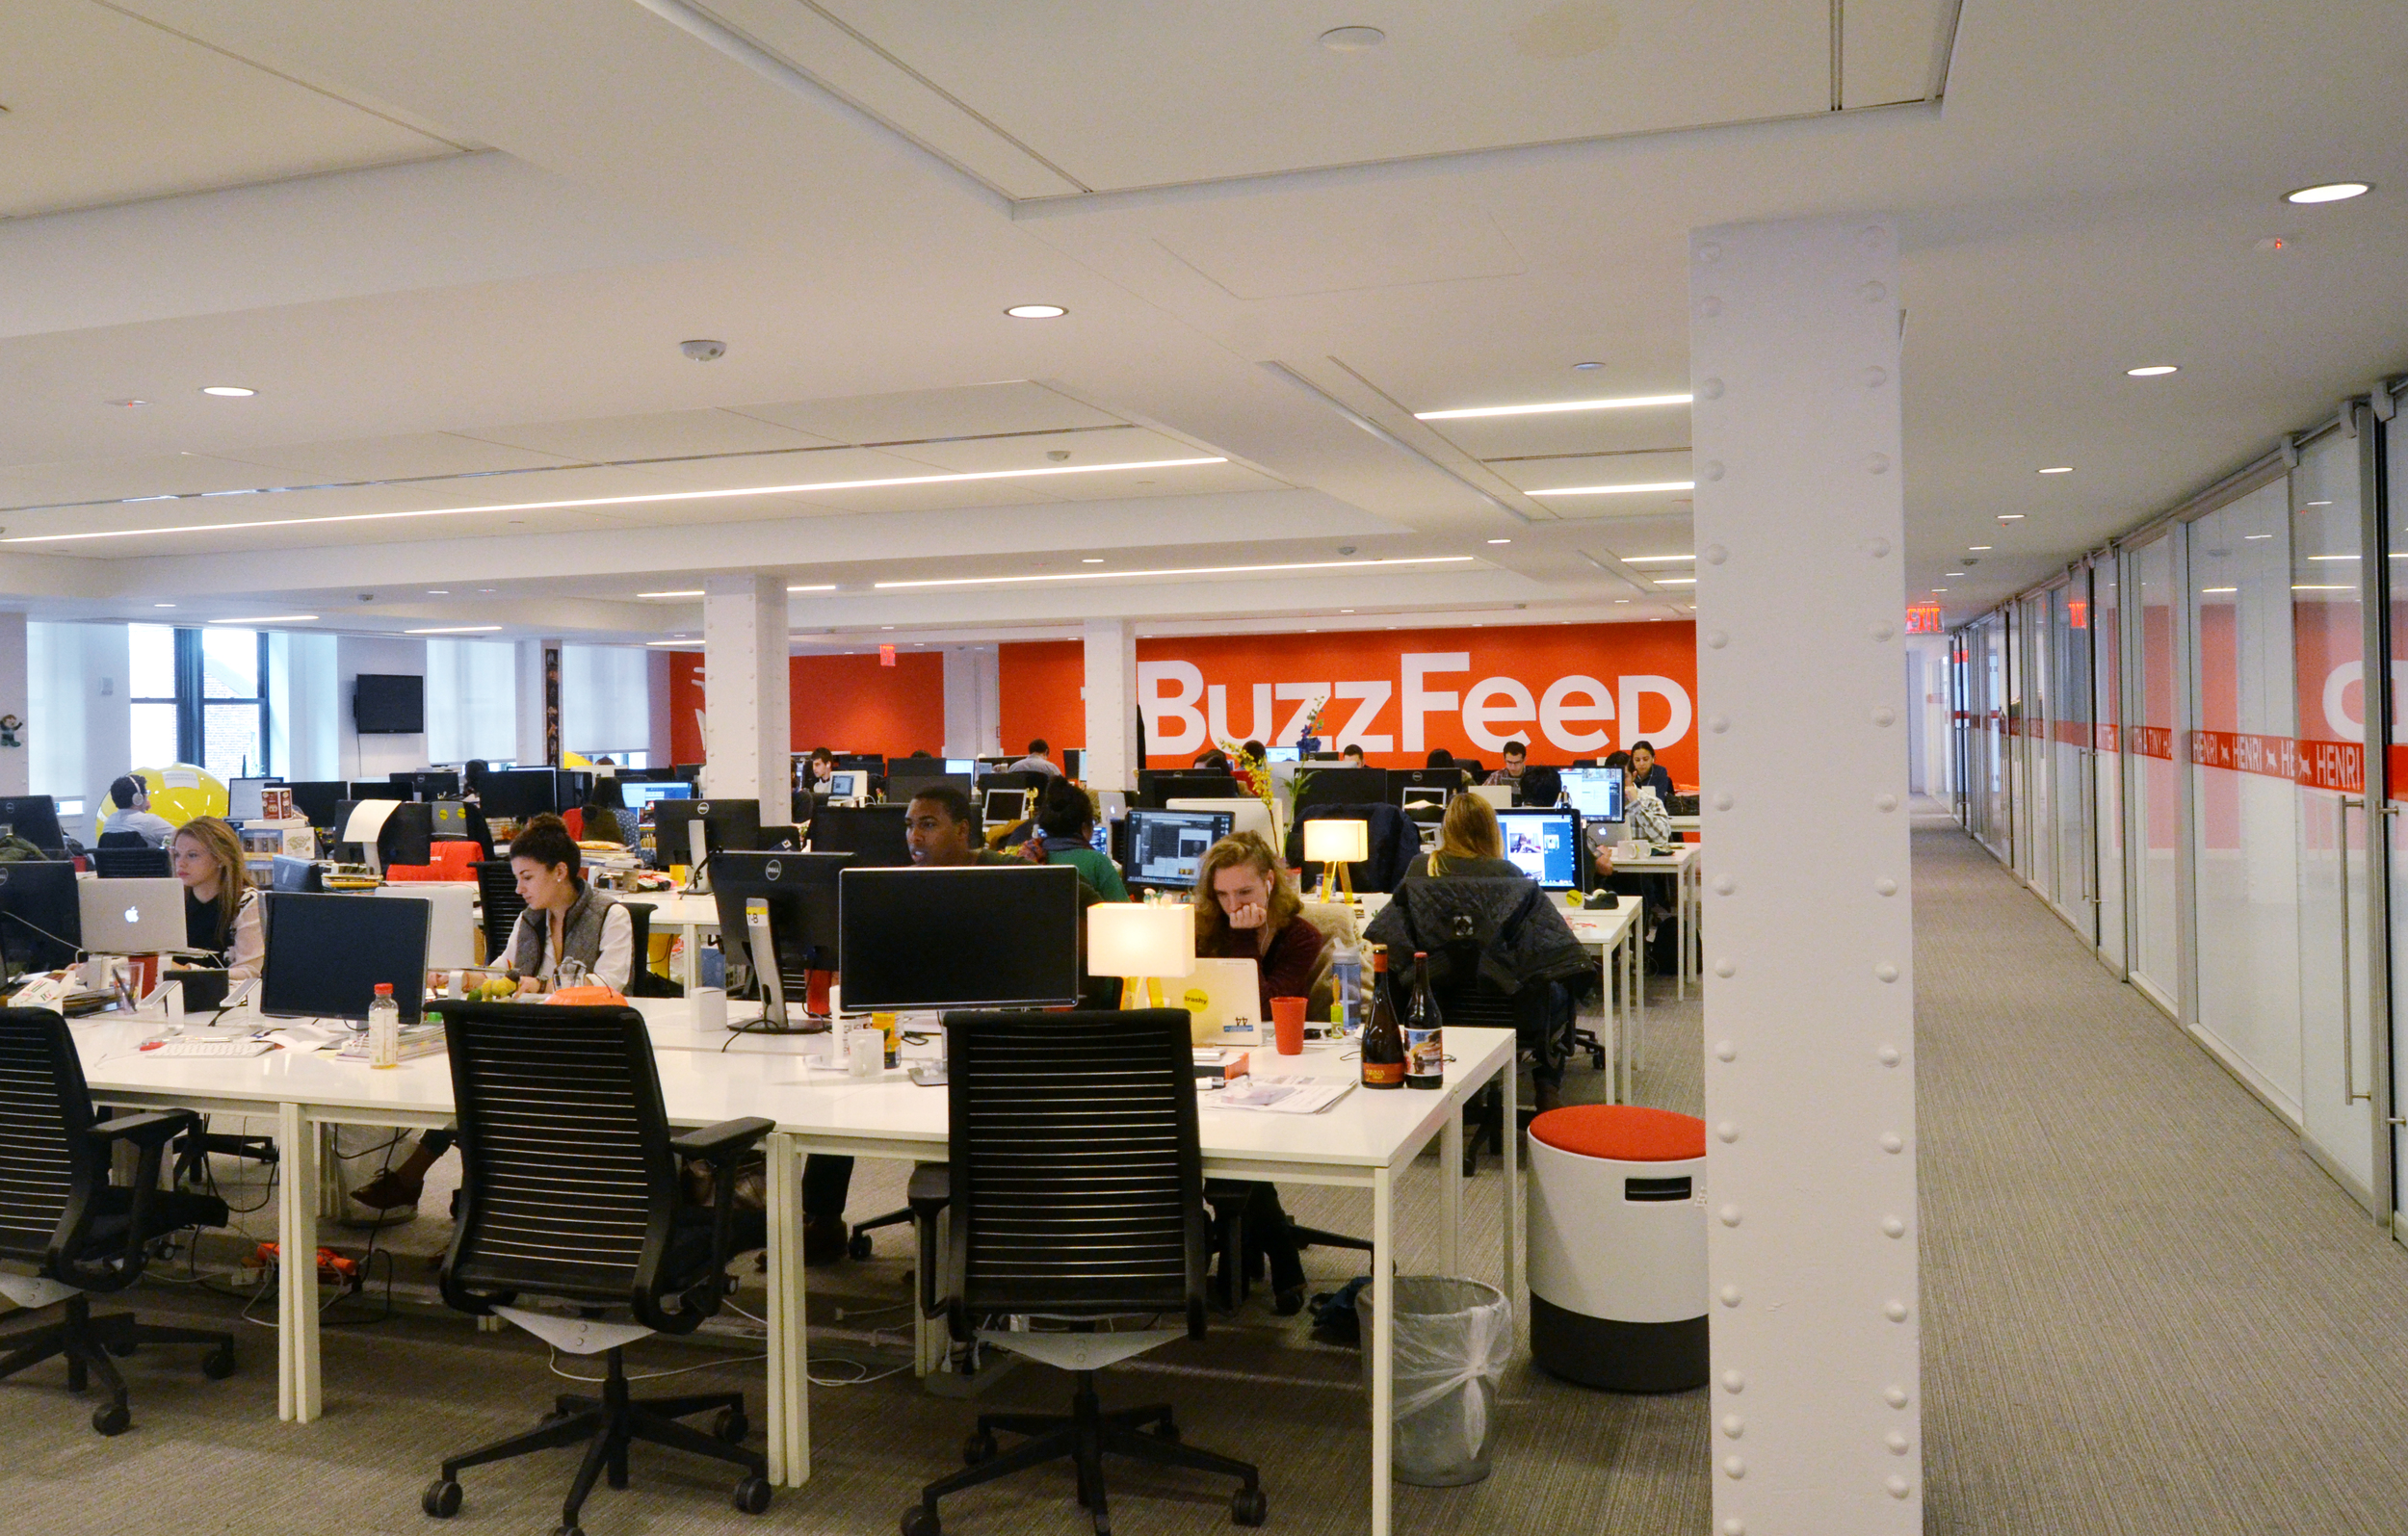 April has been a sobering month for online news startups, as BuzzFeed and other industry leaders were forced to cut budgets, layoff workers or slash revenue expectations for the year. The struggles stem from a perfect storm of plateauing web traffic and faltering ad revenue in the competitive online marketplace.